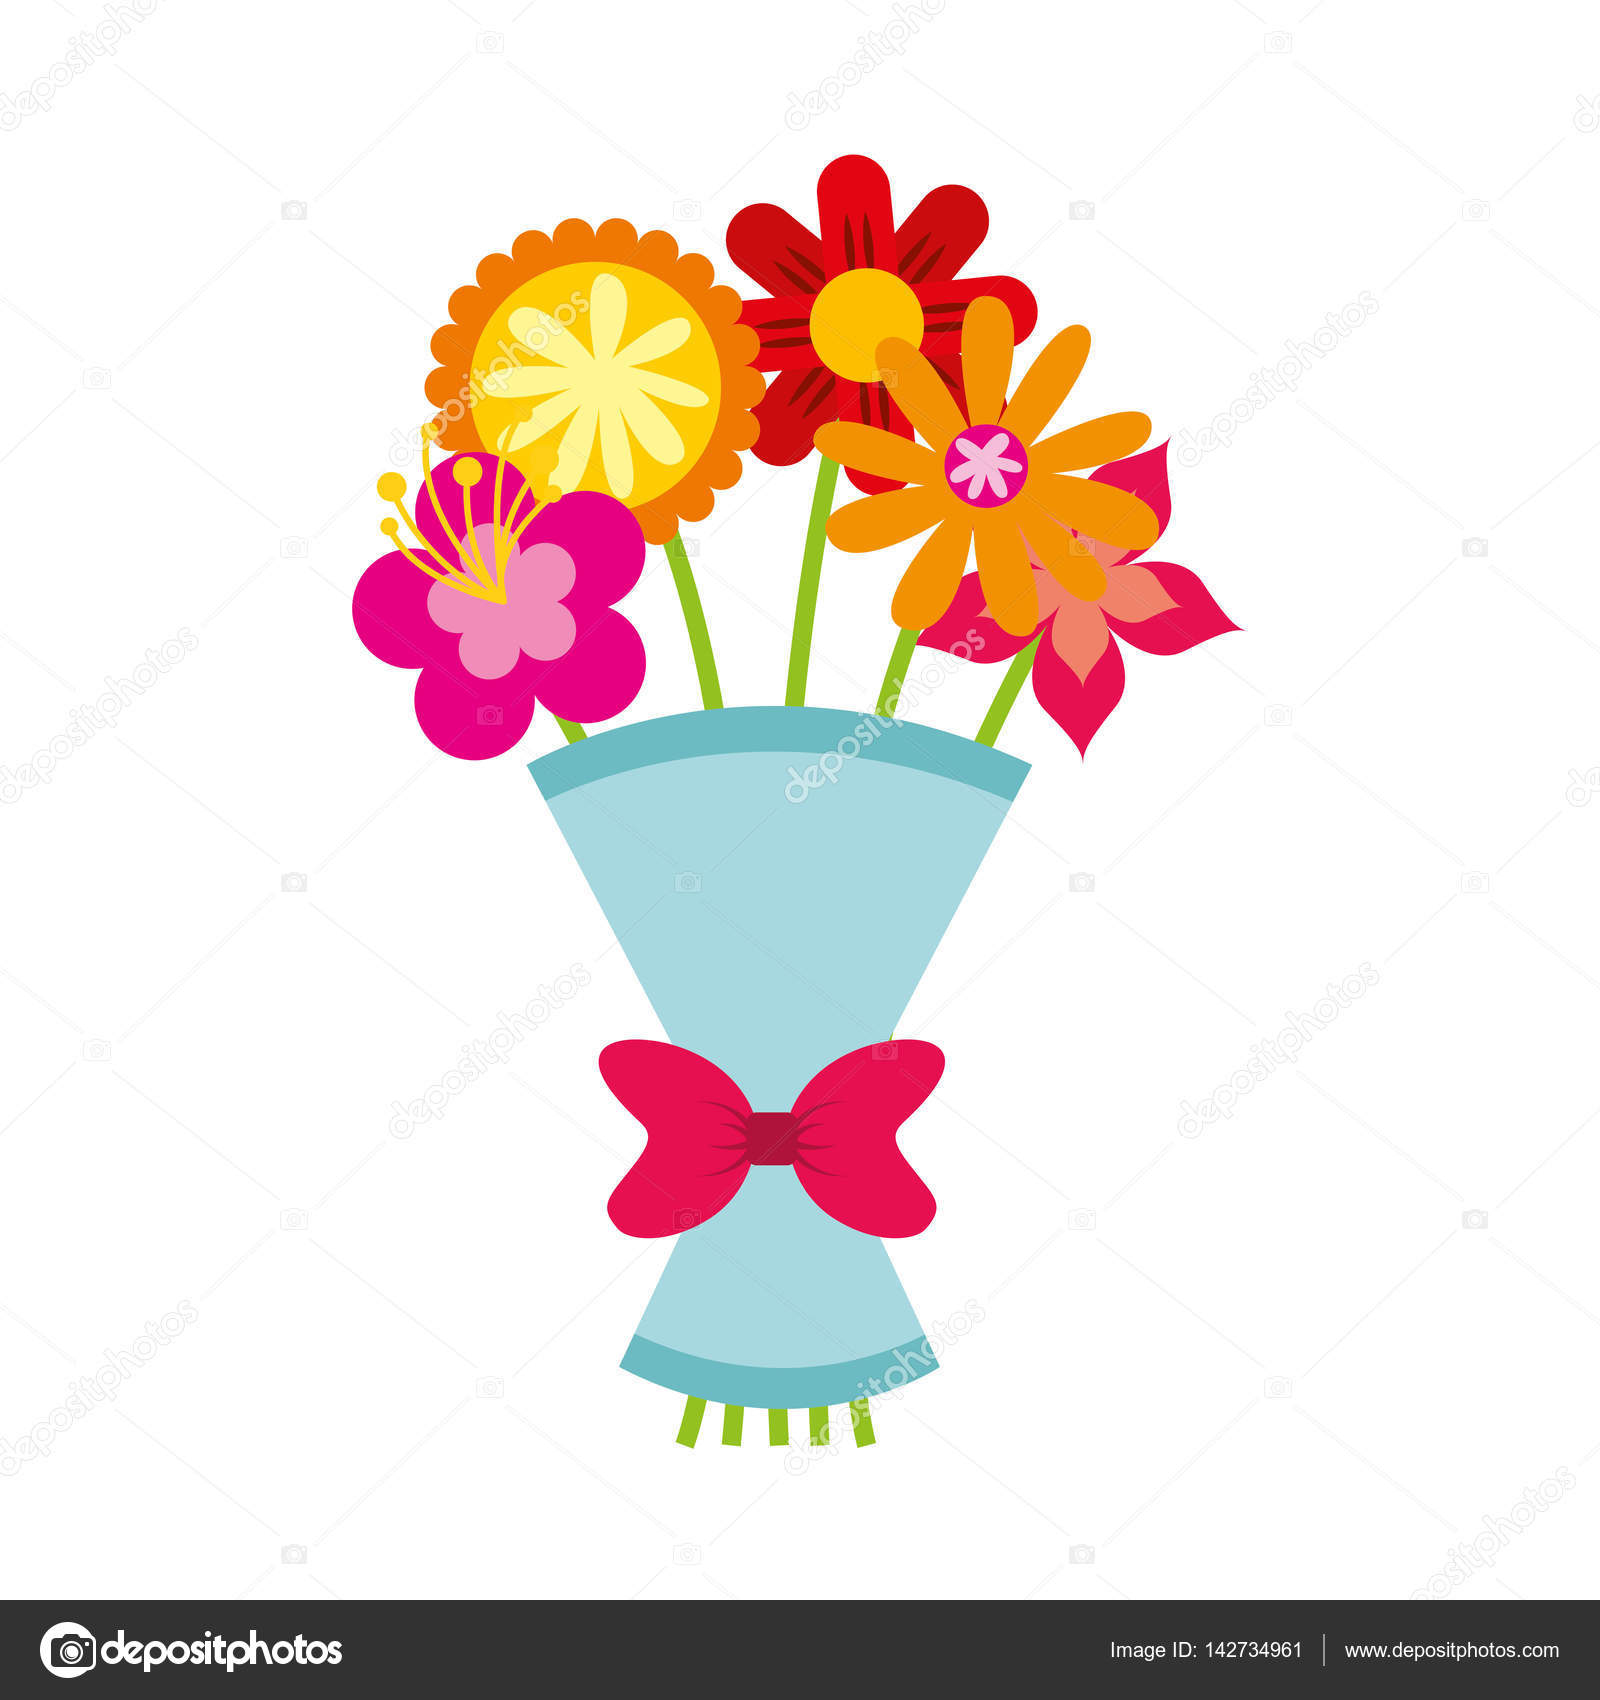 Cute bouquet of flowers nature icon stock vector yupiramos cute bouquet of flowers nature icon vector illustration design vector by yupiramos izmirmasajfo